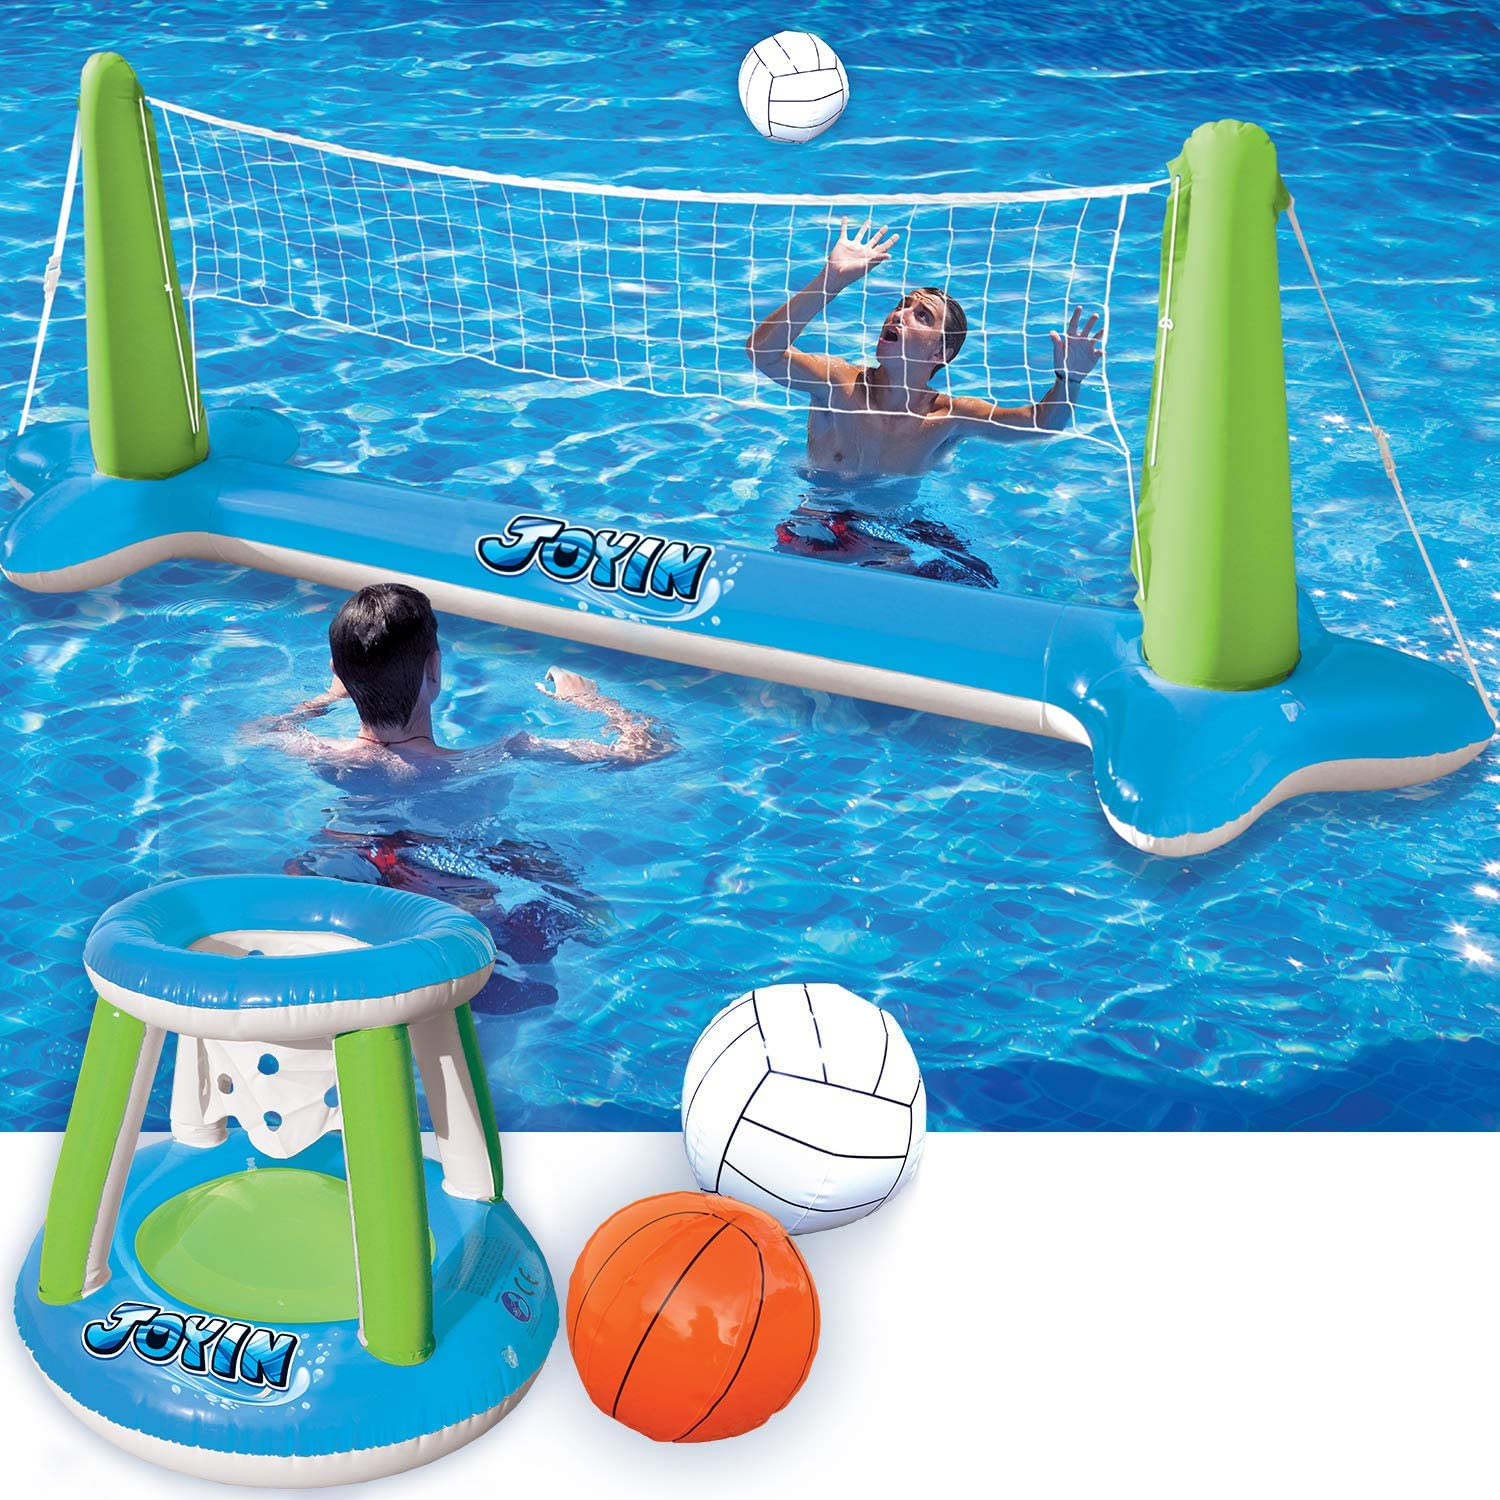 "Inflatable Volleyball Net & Basketball Hoops Green & Blue Pool Float Set; Balls Included for Kids and Adults, Summer Pool Game, Summer Floaties, Volleyball Court (105""x28""x35"")